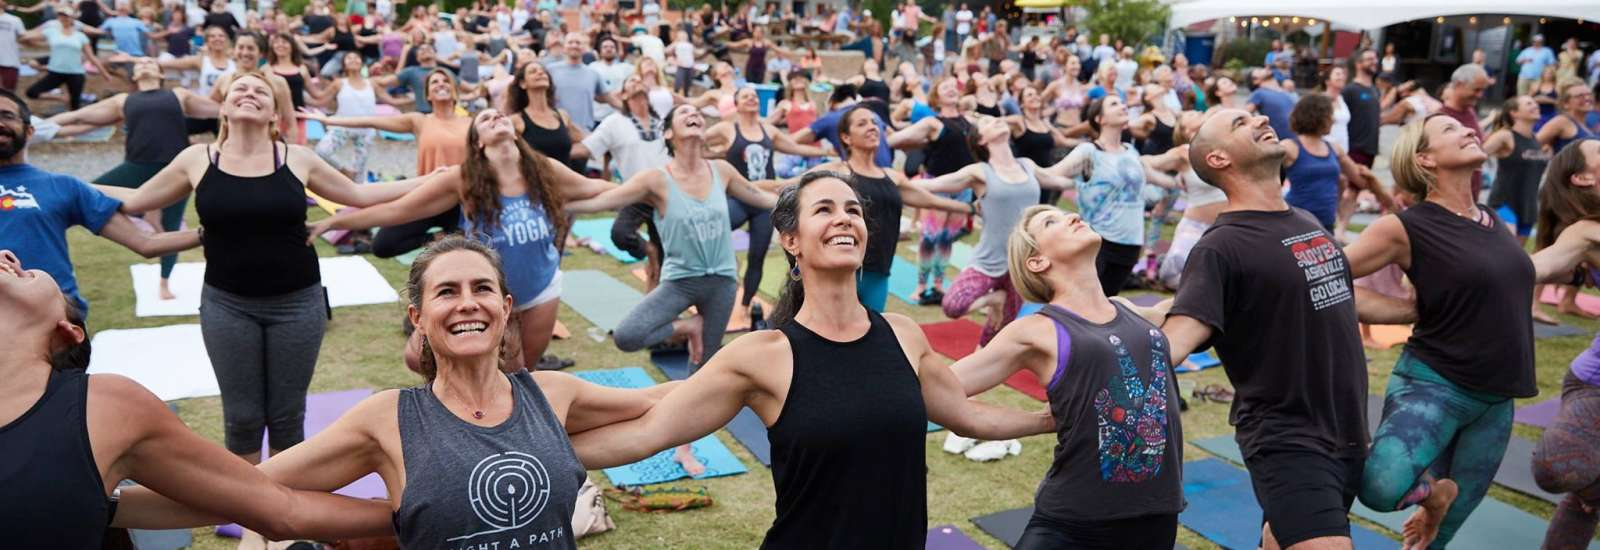 Outdoor Yoga Festival